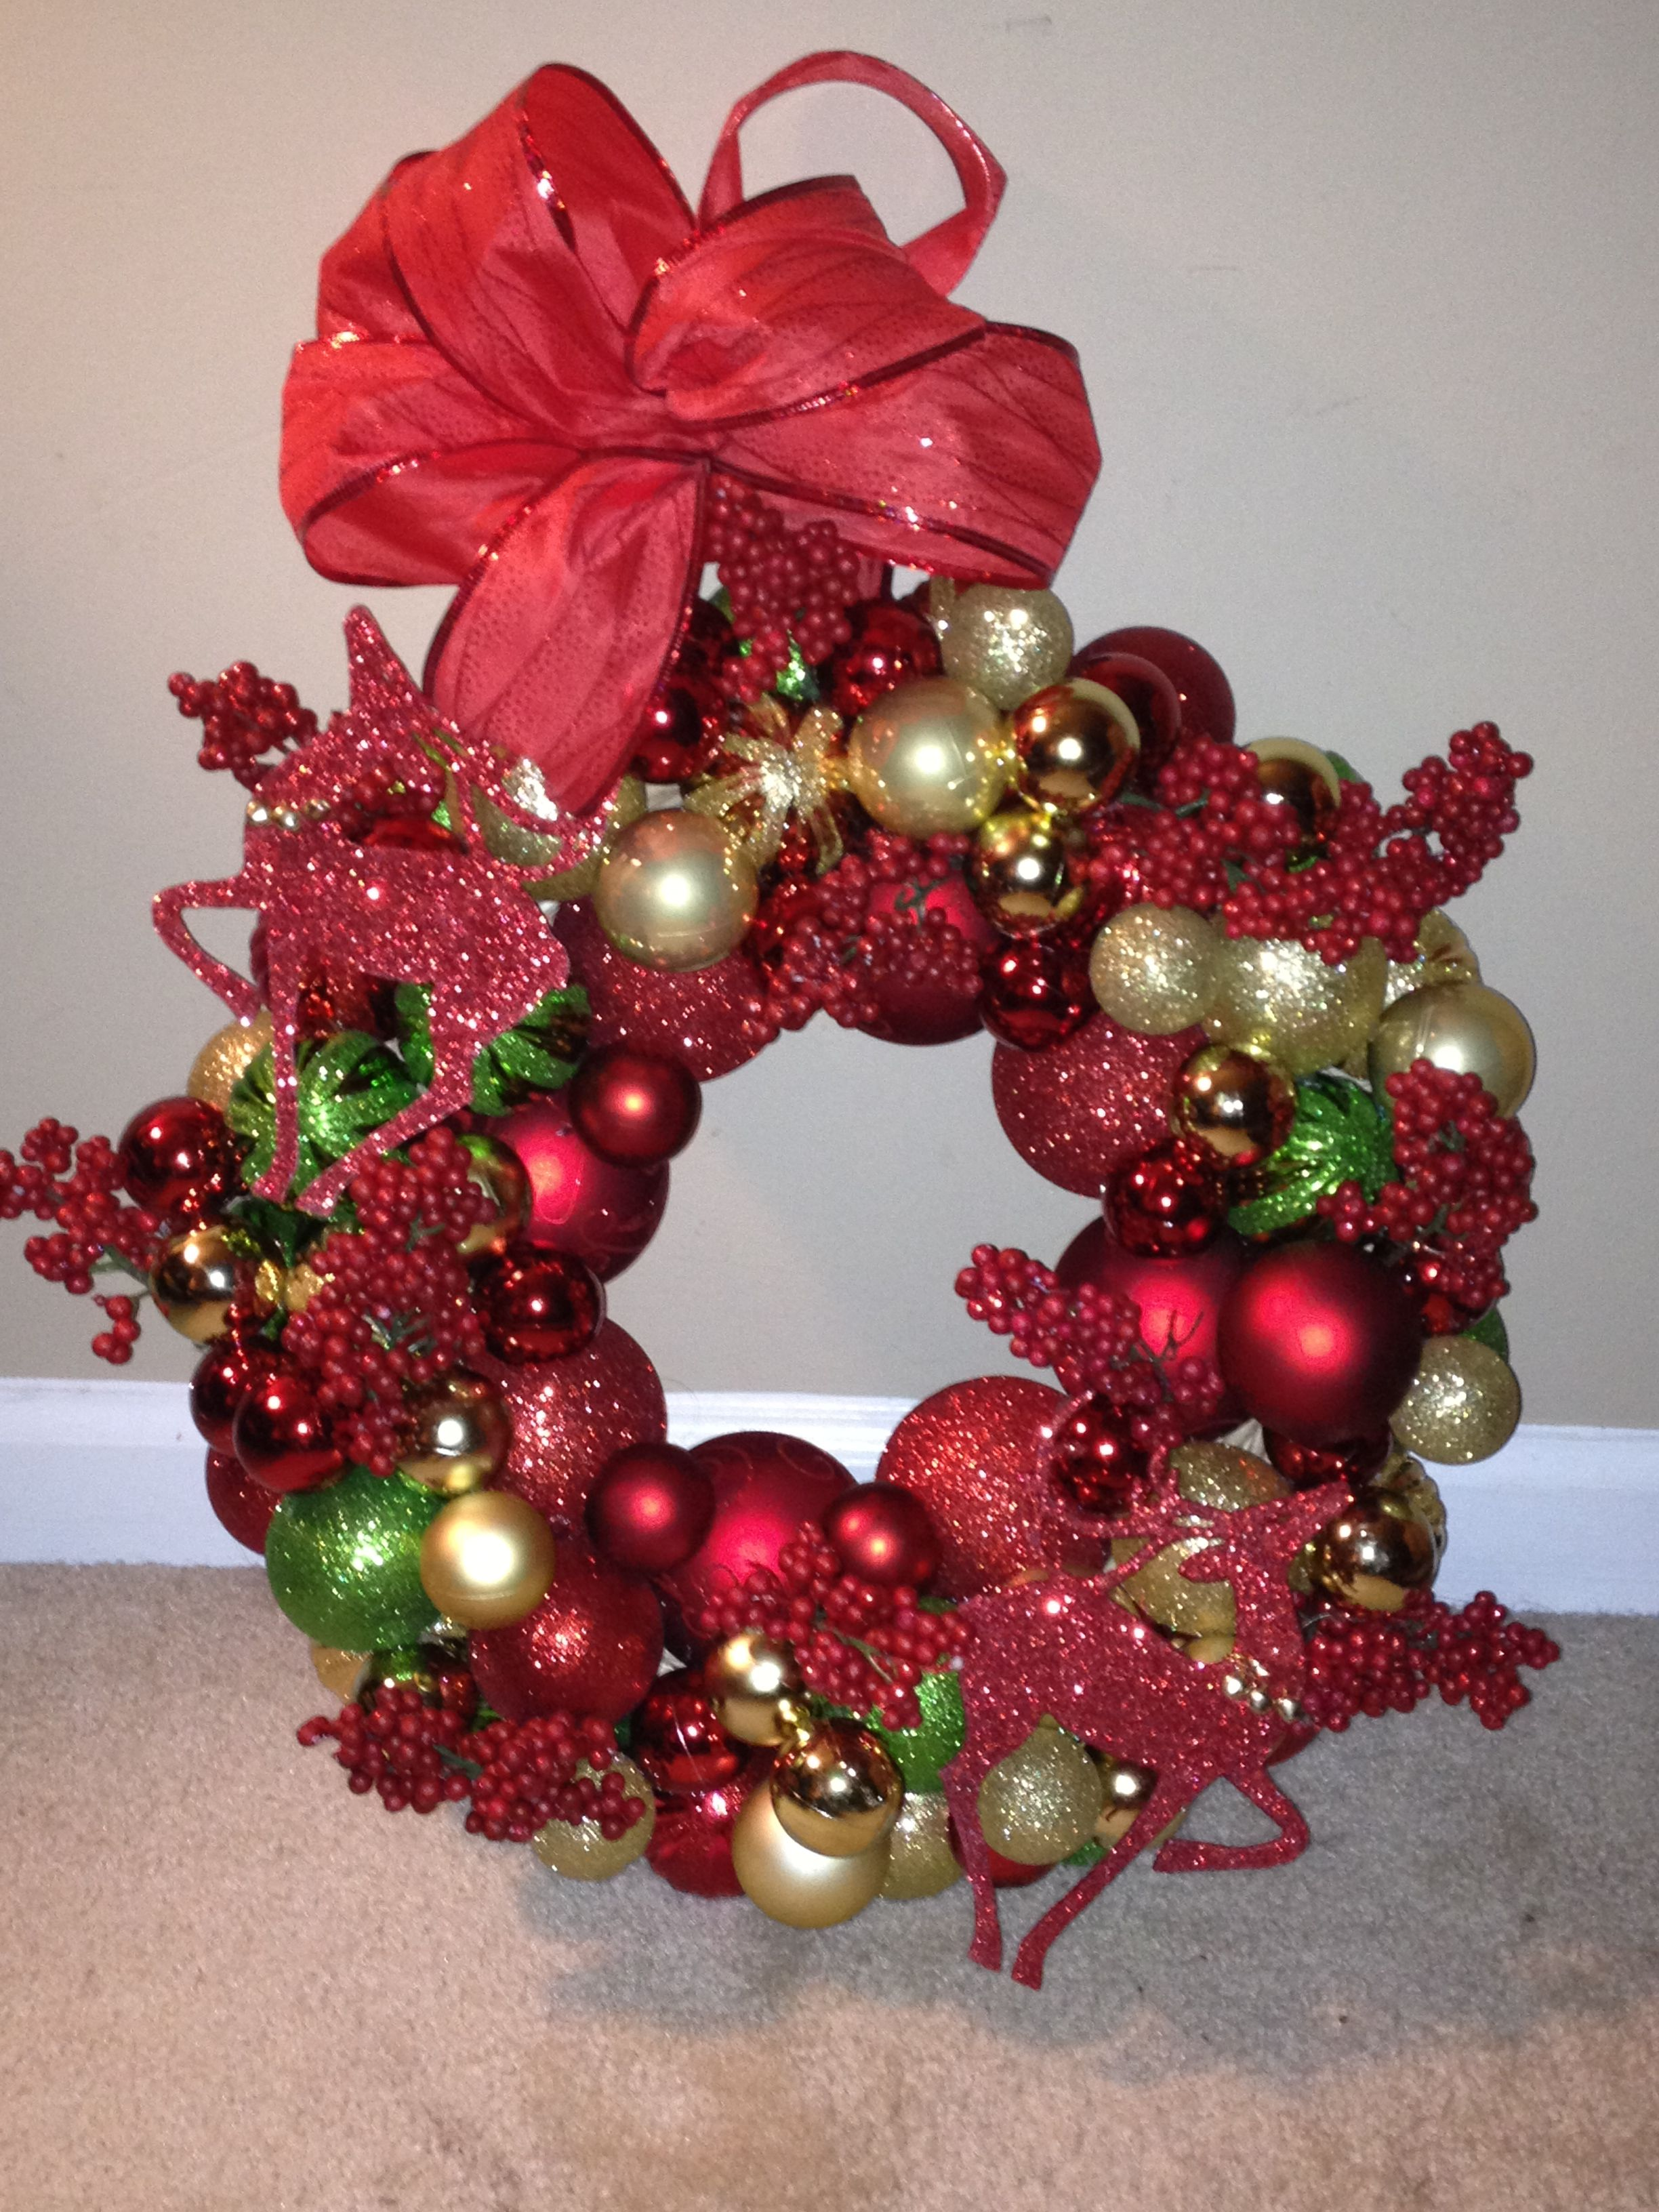 My second homemade wreath!! Bought everything from the